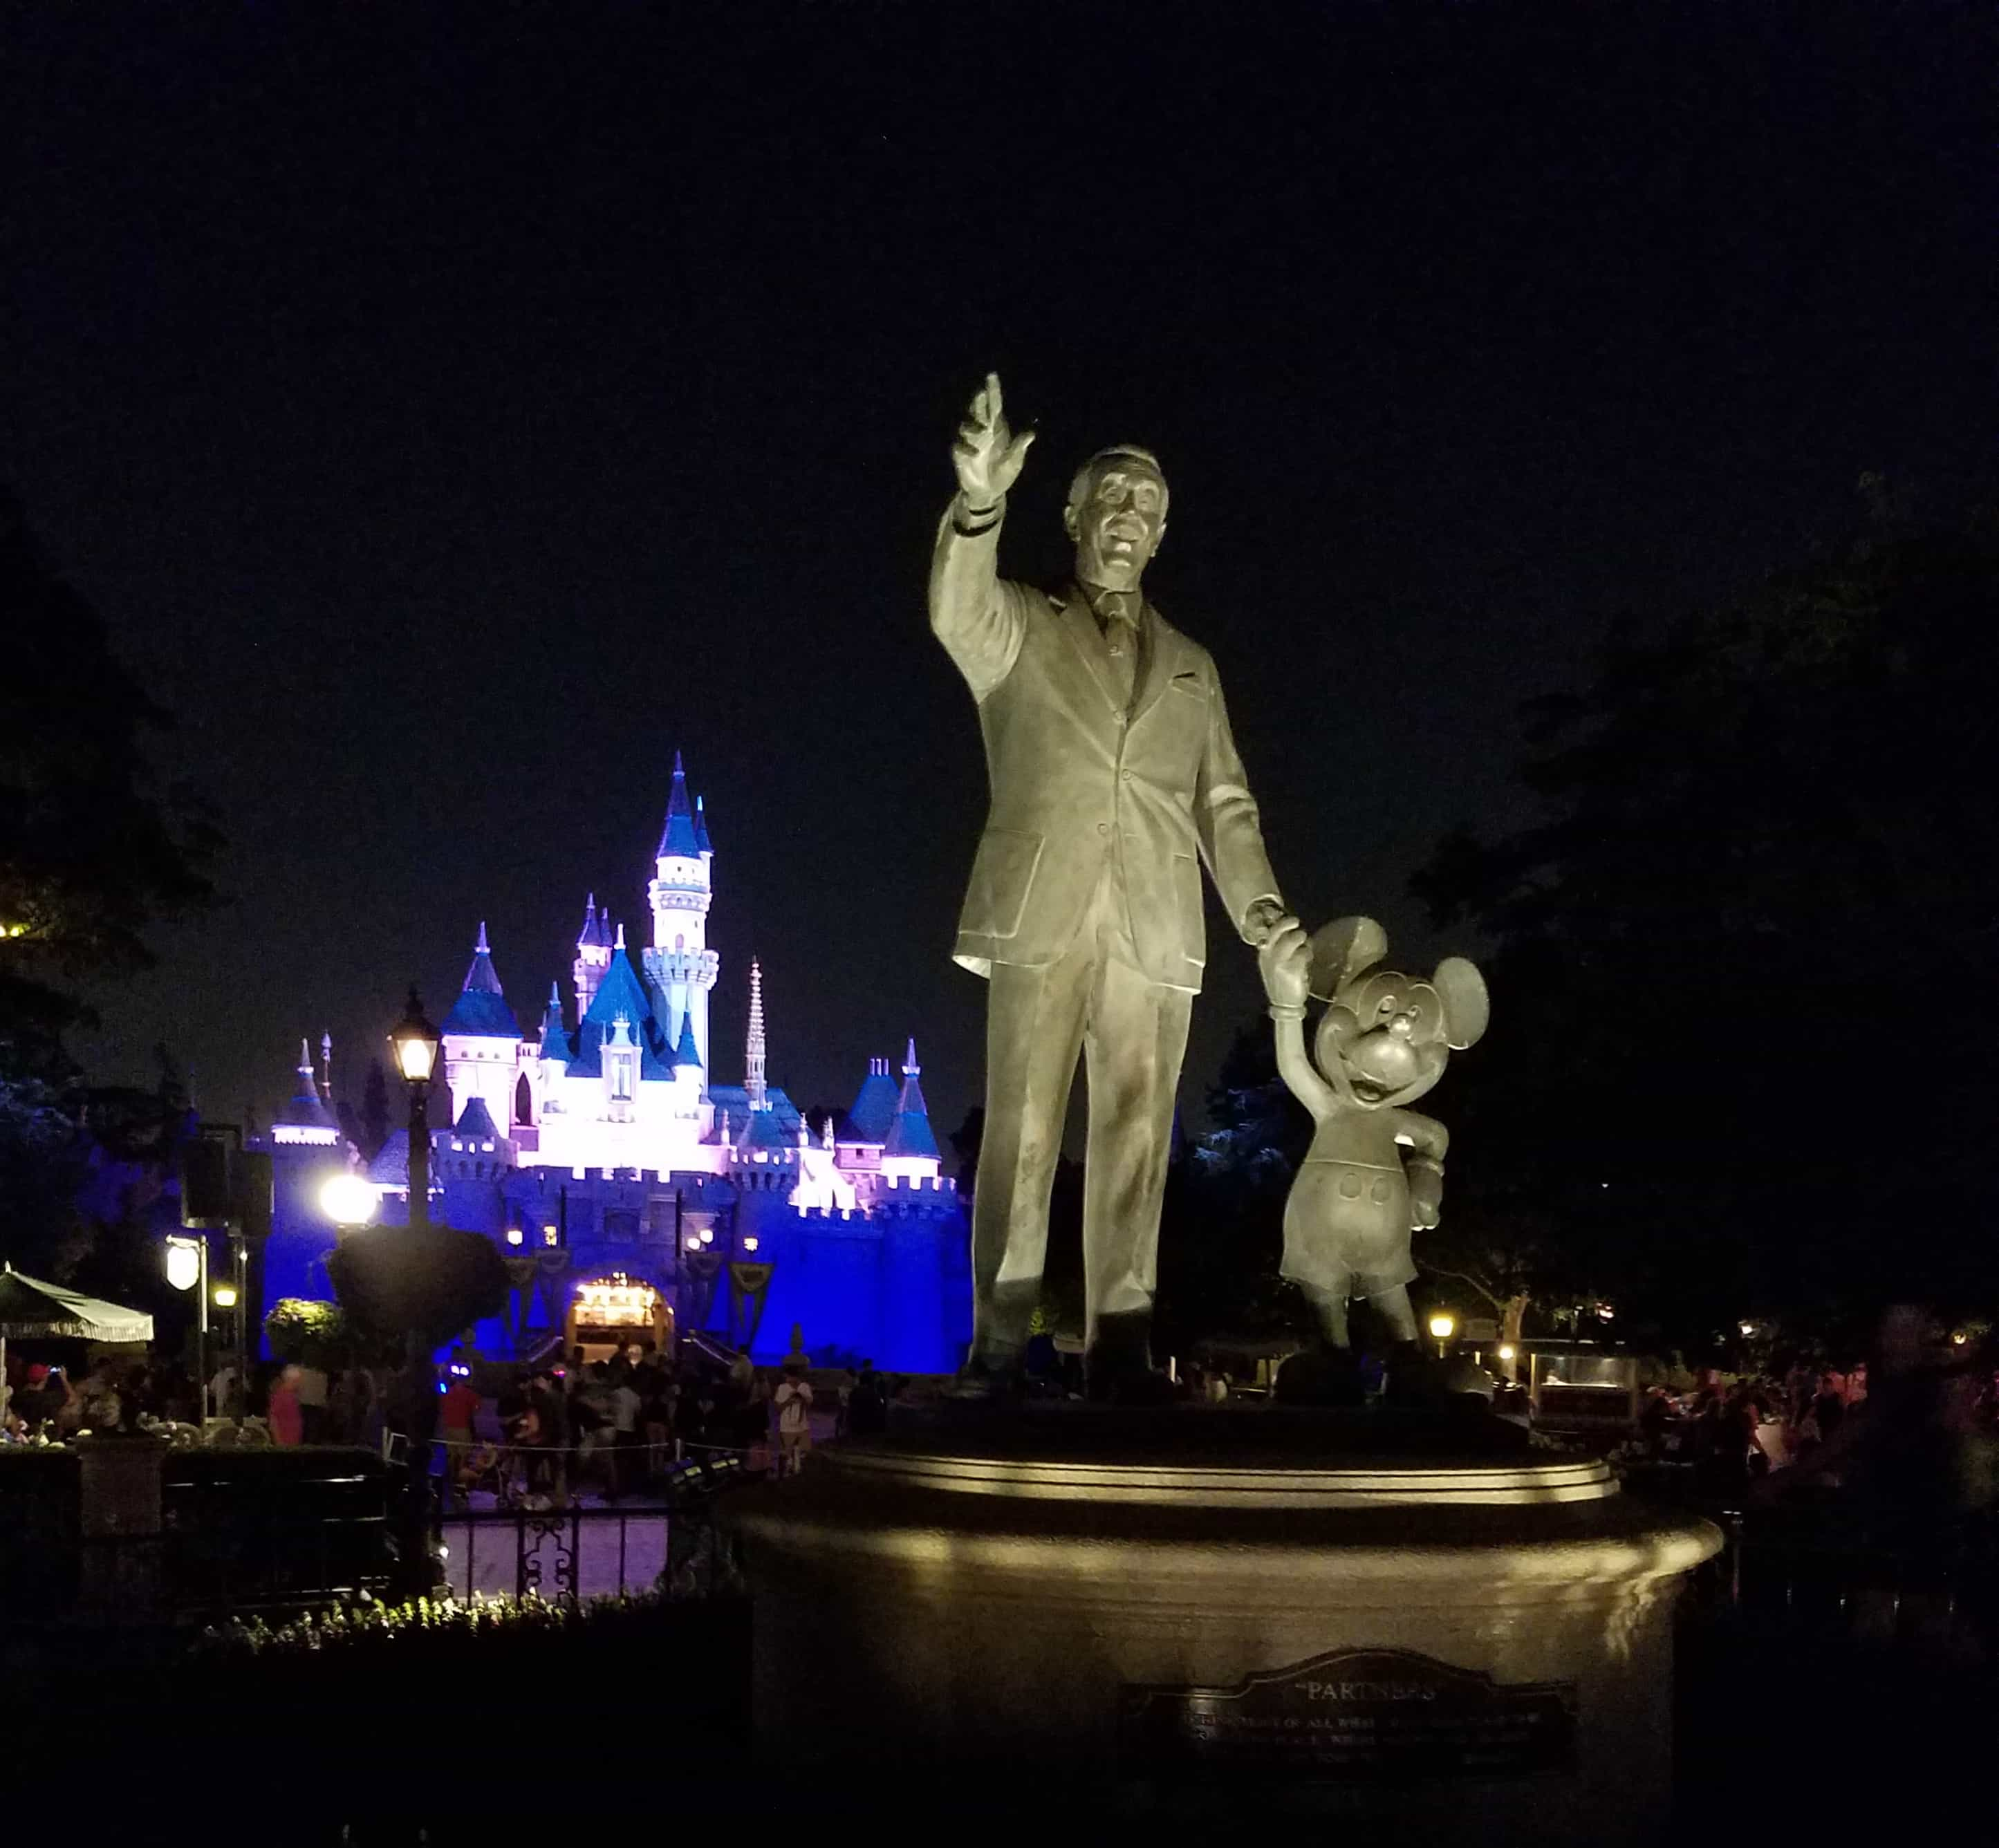 While at D23 Expo - Disneyland and Disney California Adventure - Walt Disney and Mickey Mouse